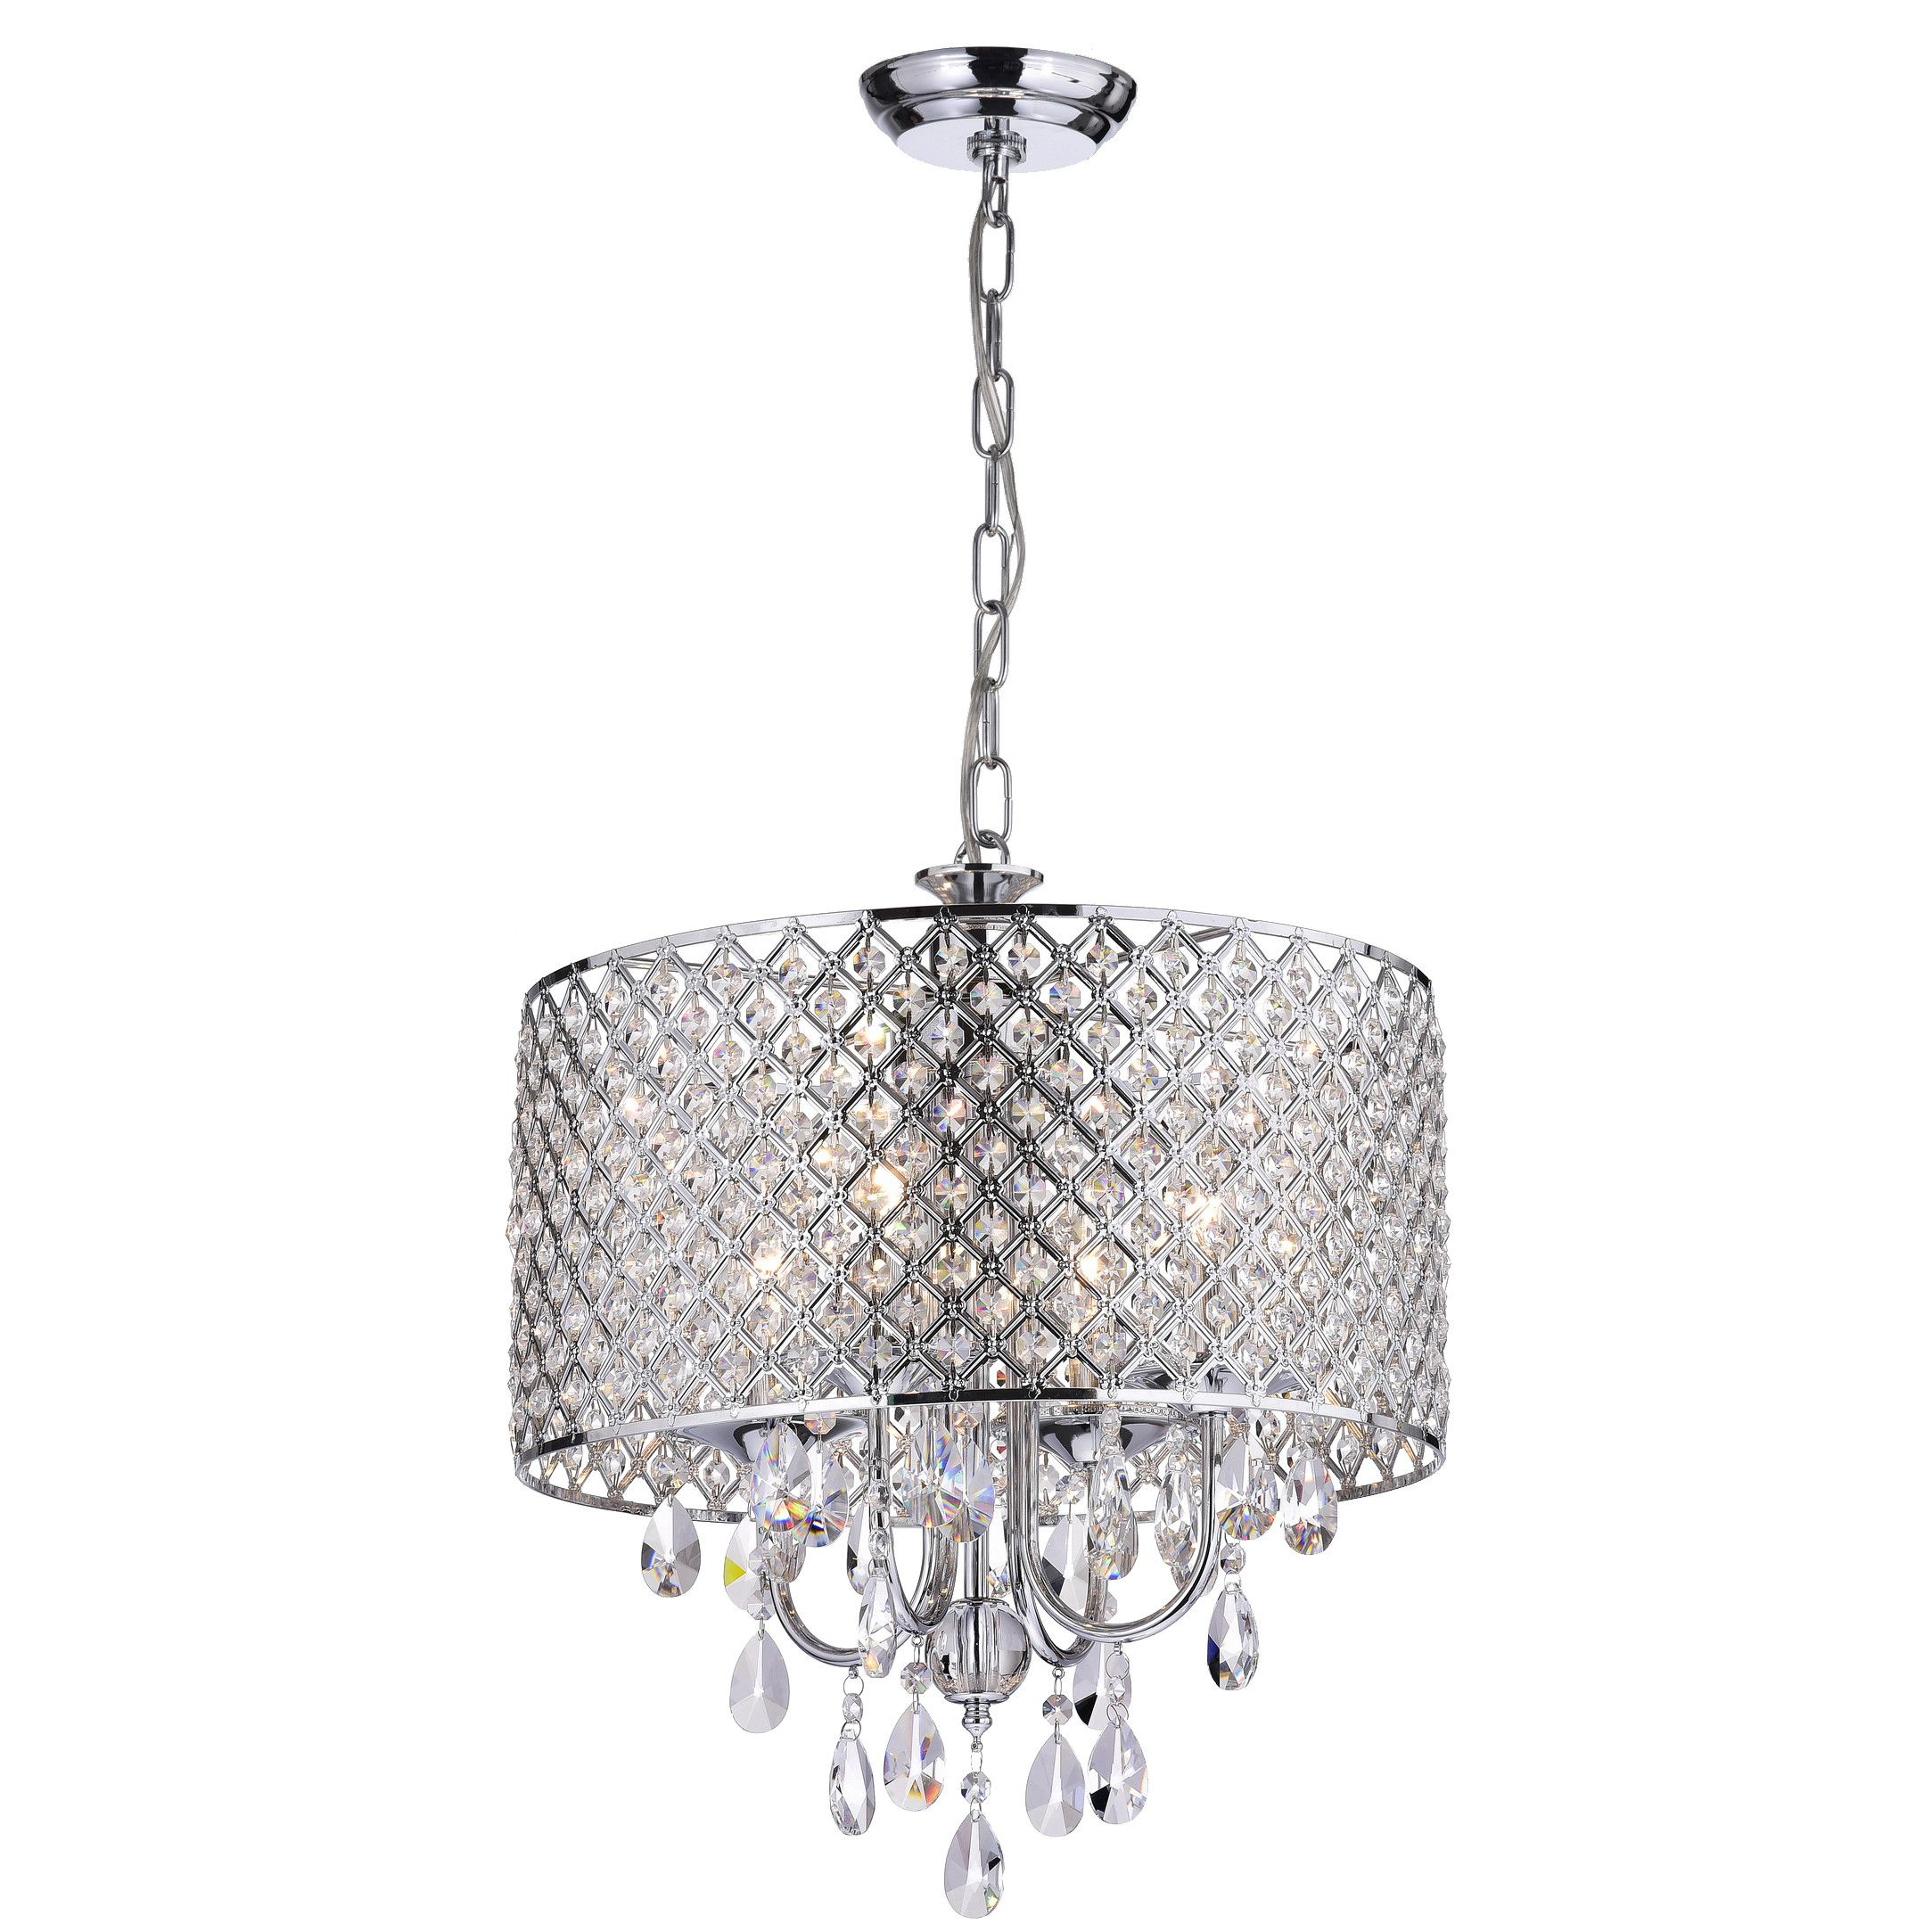 Chandeliers Intended For Aurore 4 Light Crystal Chandeliers (Gallery 7 of 20)